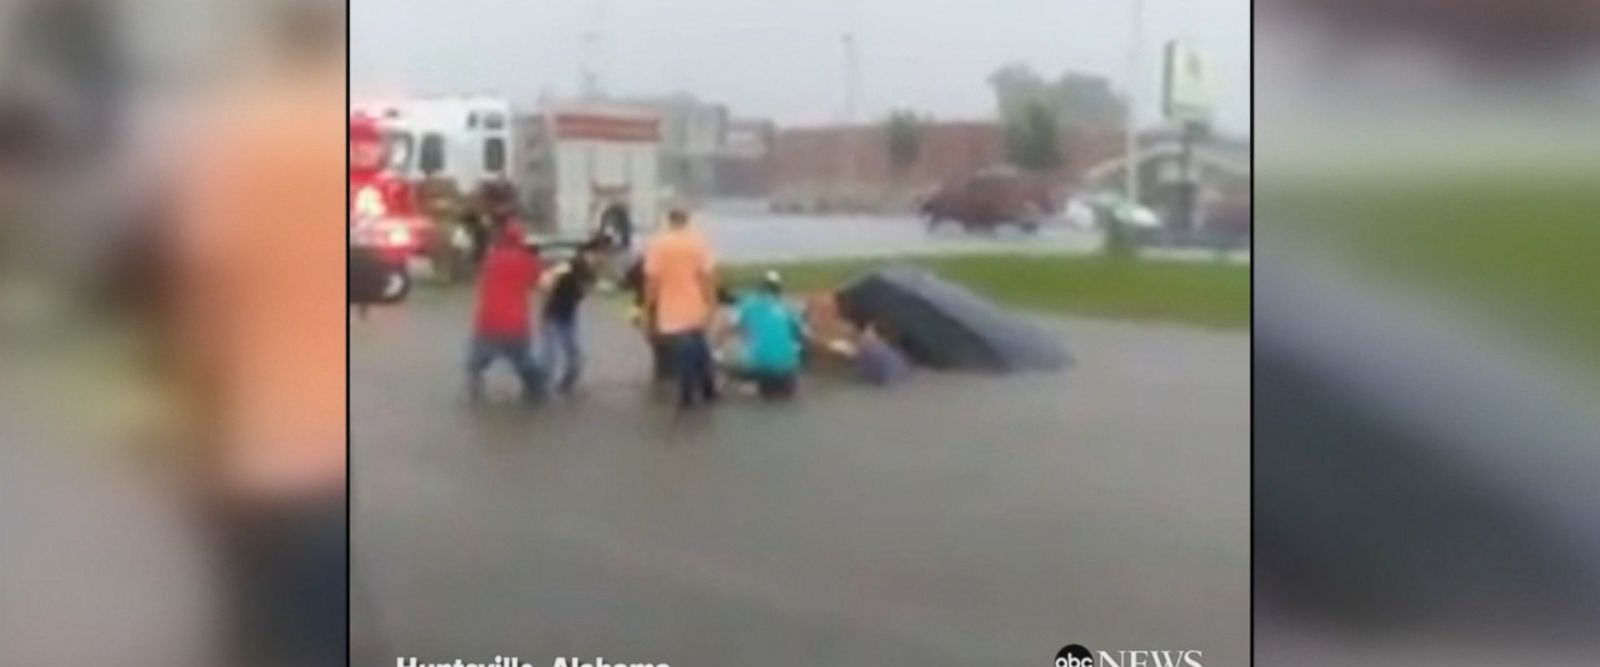 Good Samaritans work to free a driver stuck in her car after a flash flood swept her car into a ditch and was filling up with water.